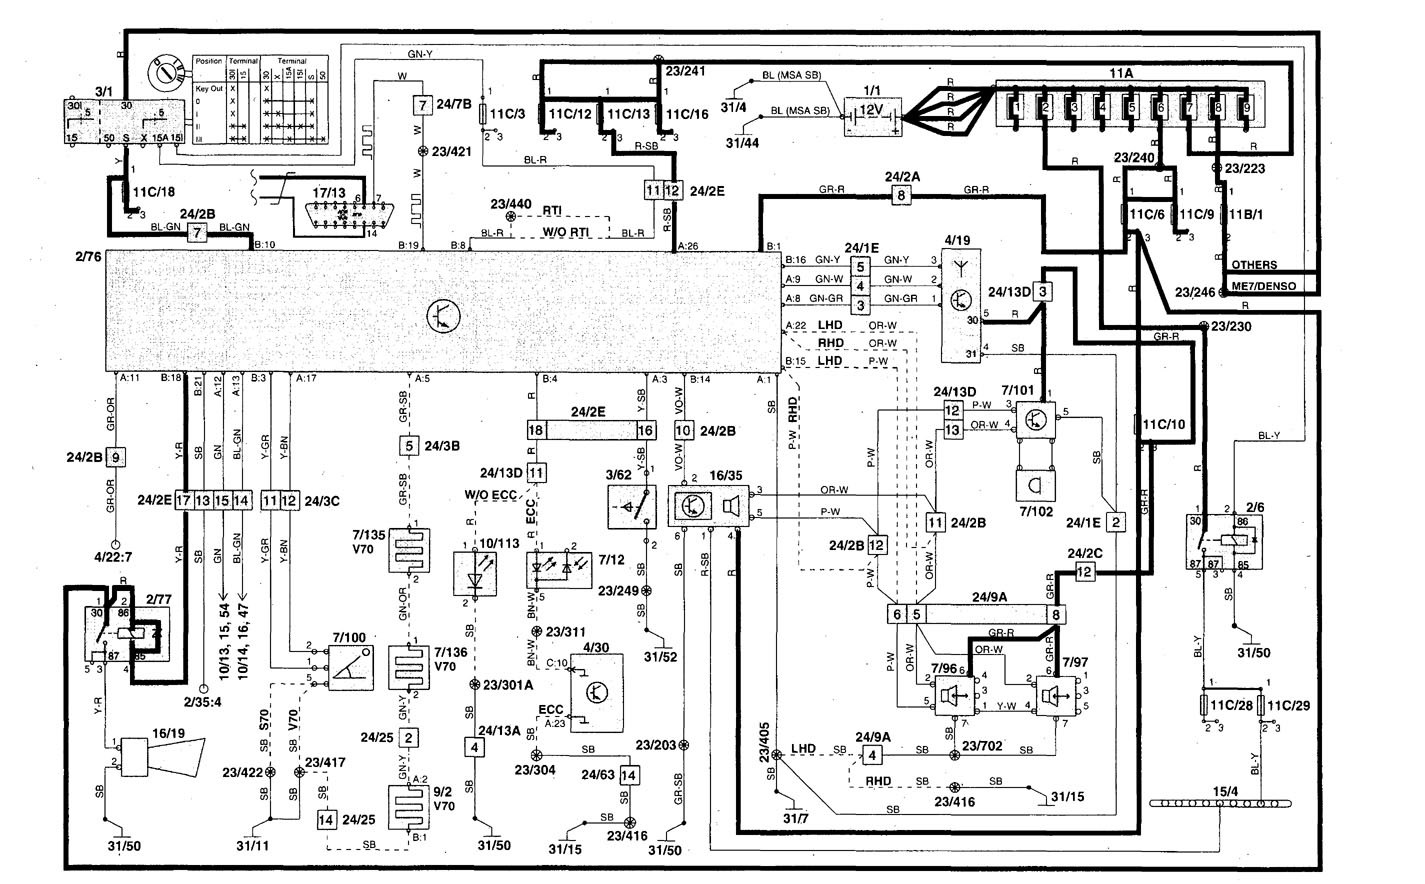 Wiring Diagram V70 1998 Trusted Schematics 2001 Volvo Fuel Pump T5 1999 Diagrams Security Anti Theft Wagon